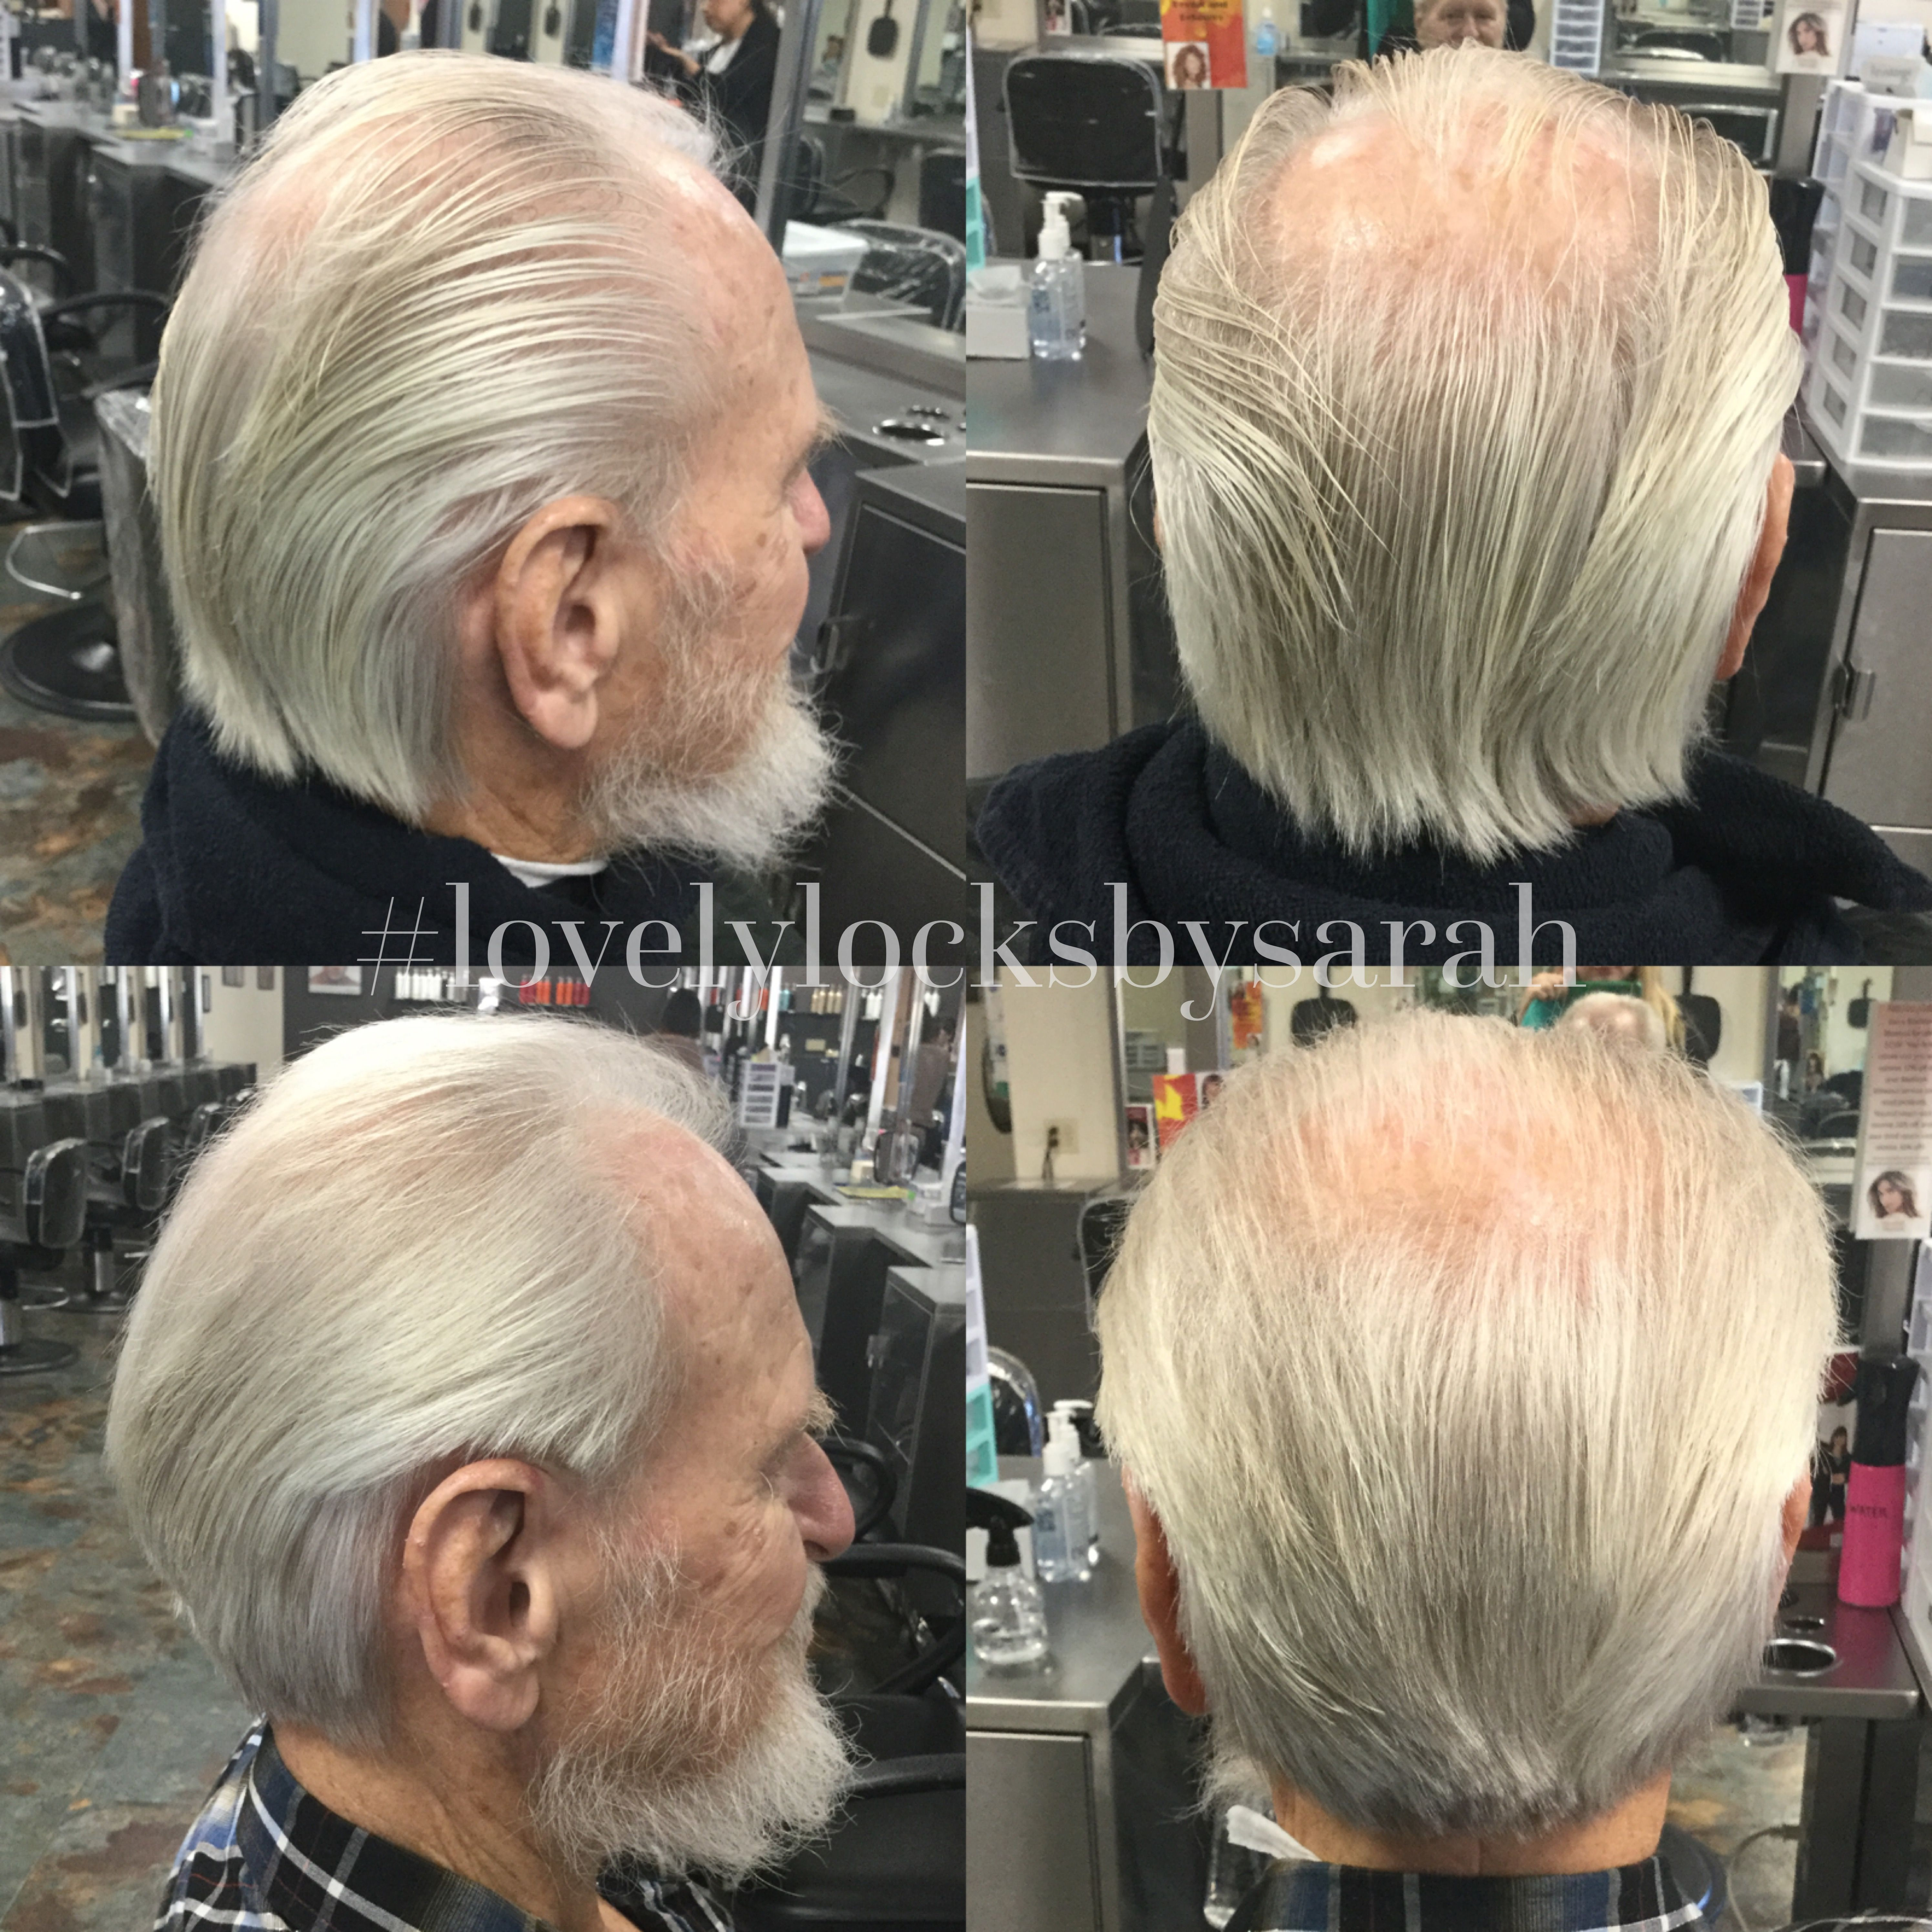 December 6 2016 45 To 90 Degree Haircut Products Nioxin Style Foam Texturizer Degree Haircut 90 Degree Haircut Haircuts For Men